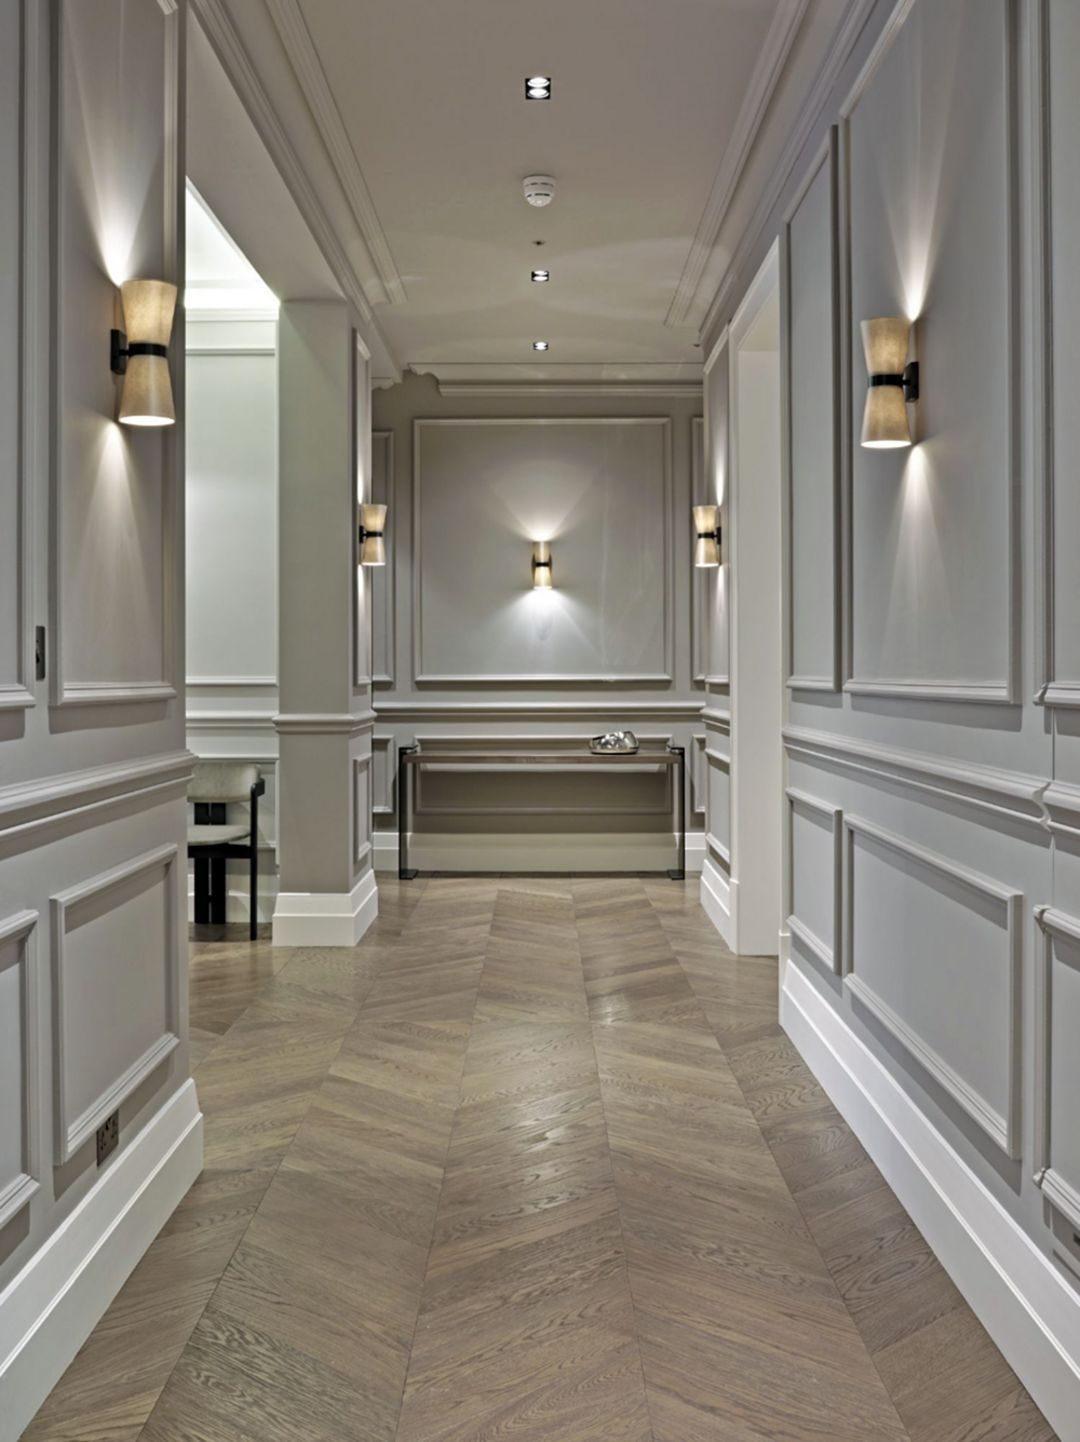 10 Best Wainscoting Design Ideas To Beautify Your Home Interior In